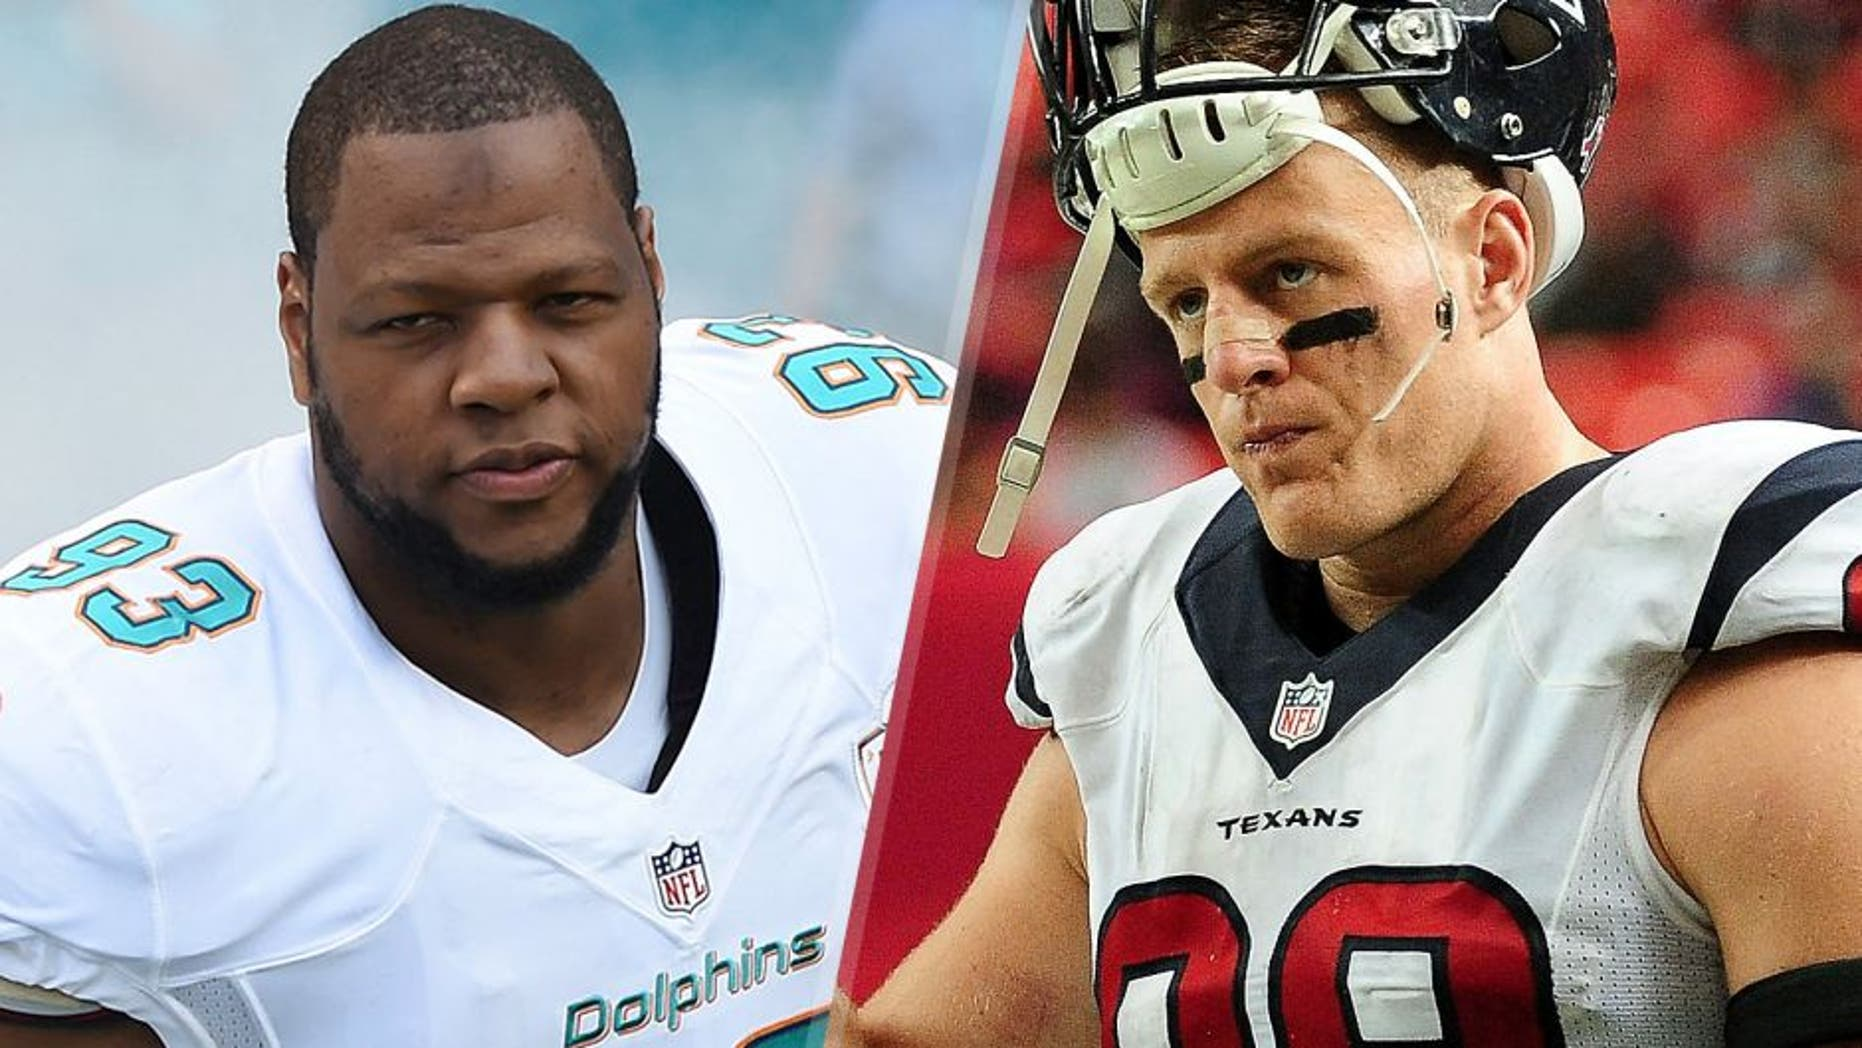 Ndamukong Suh #93 of the Miami Dolphins enters the field before a NFL game against the Buffalo Bills at Sun Life Stadium on September 27, 2015 in Miami Gardens, Florida. (Photo by Ron Elkman/Sports Imagery/Getty Images) J.J. Watt #99 of the Houston Texans stands on the sidelines in the second half against the Atlanta Falcons at the Georgia Dome on October 4, 2015 in Atlanta, Georgia. (Photo by Scott Cunningham/Getty Images)